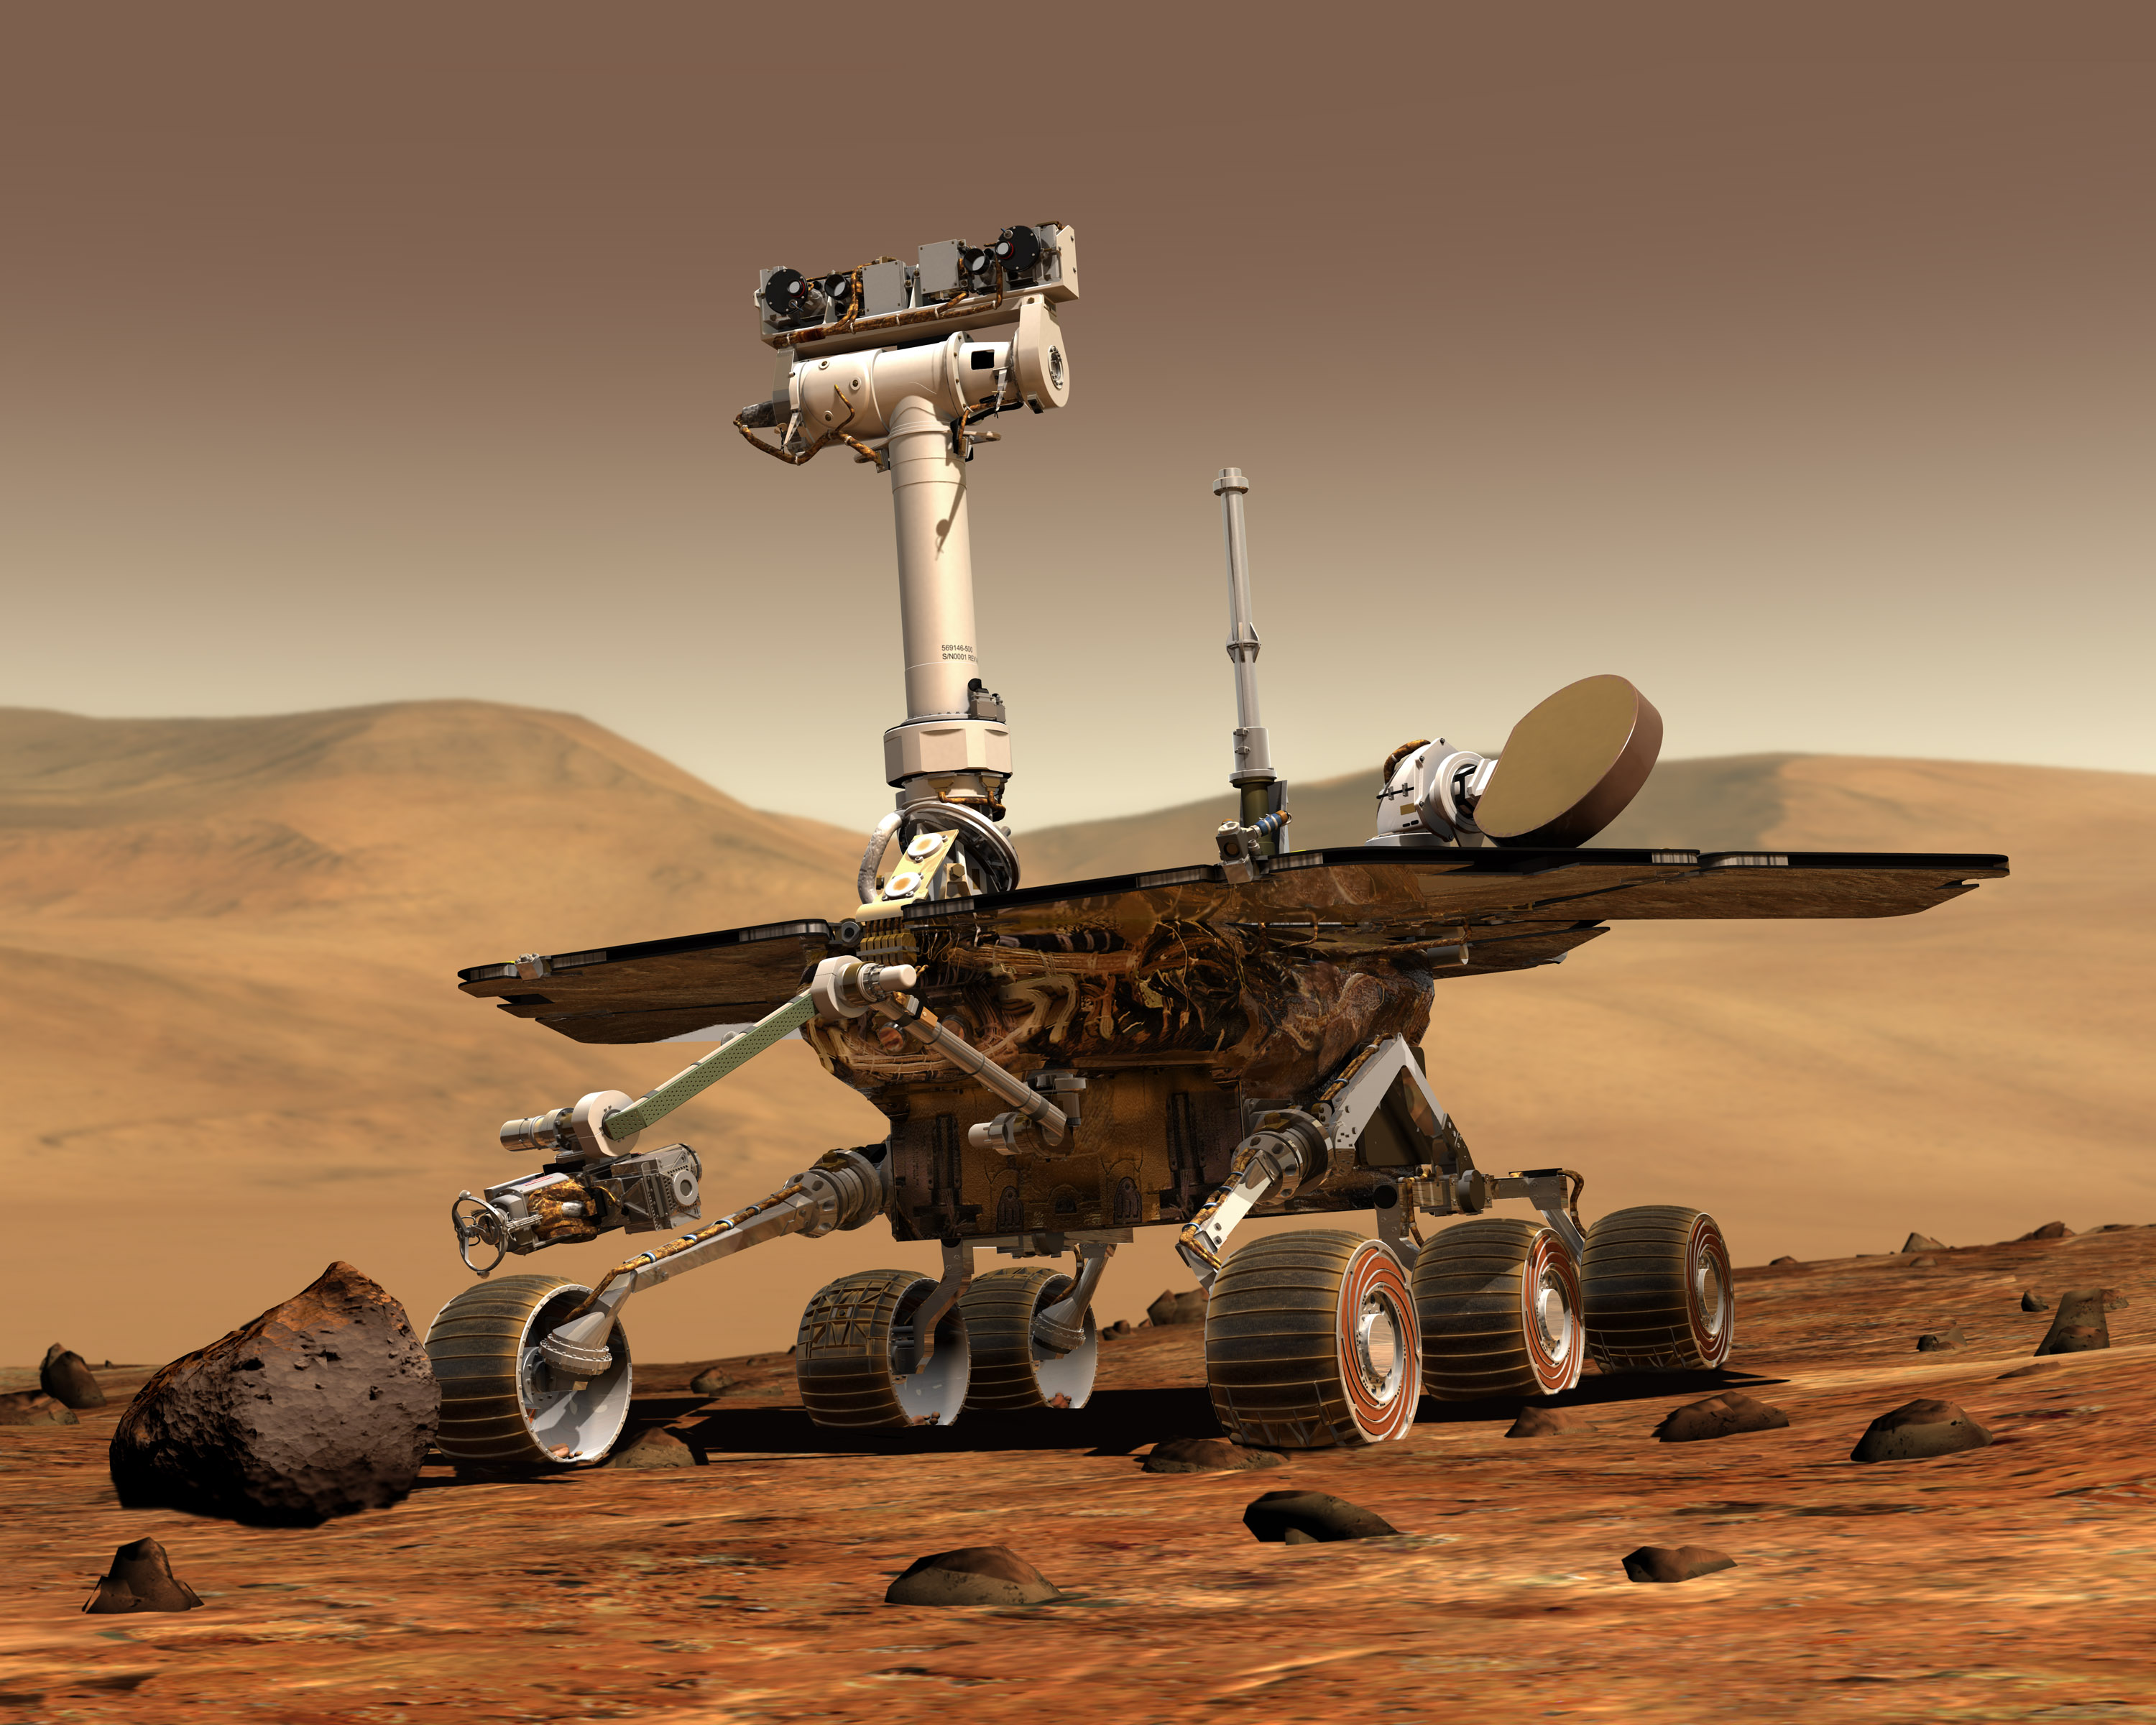 Texting robots on Mars using Python, Flask, NASA APIs and Twilio MMS